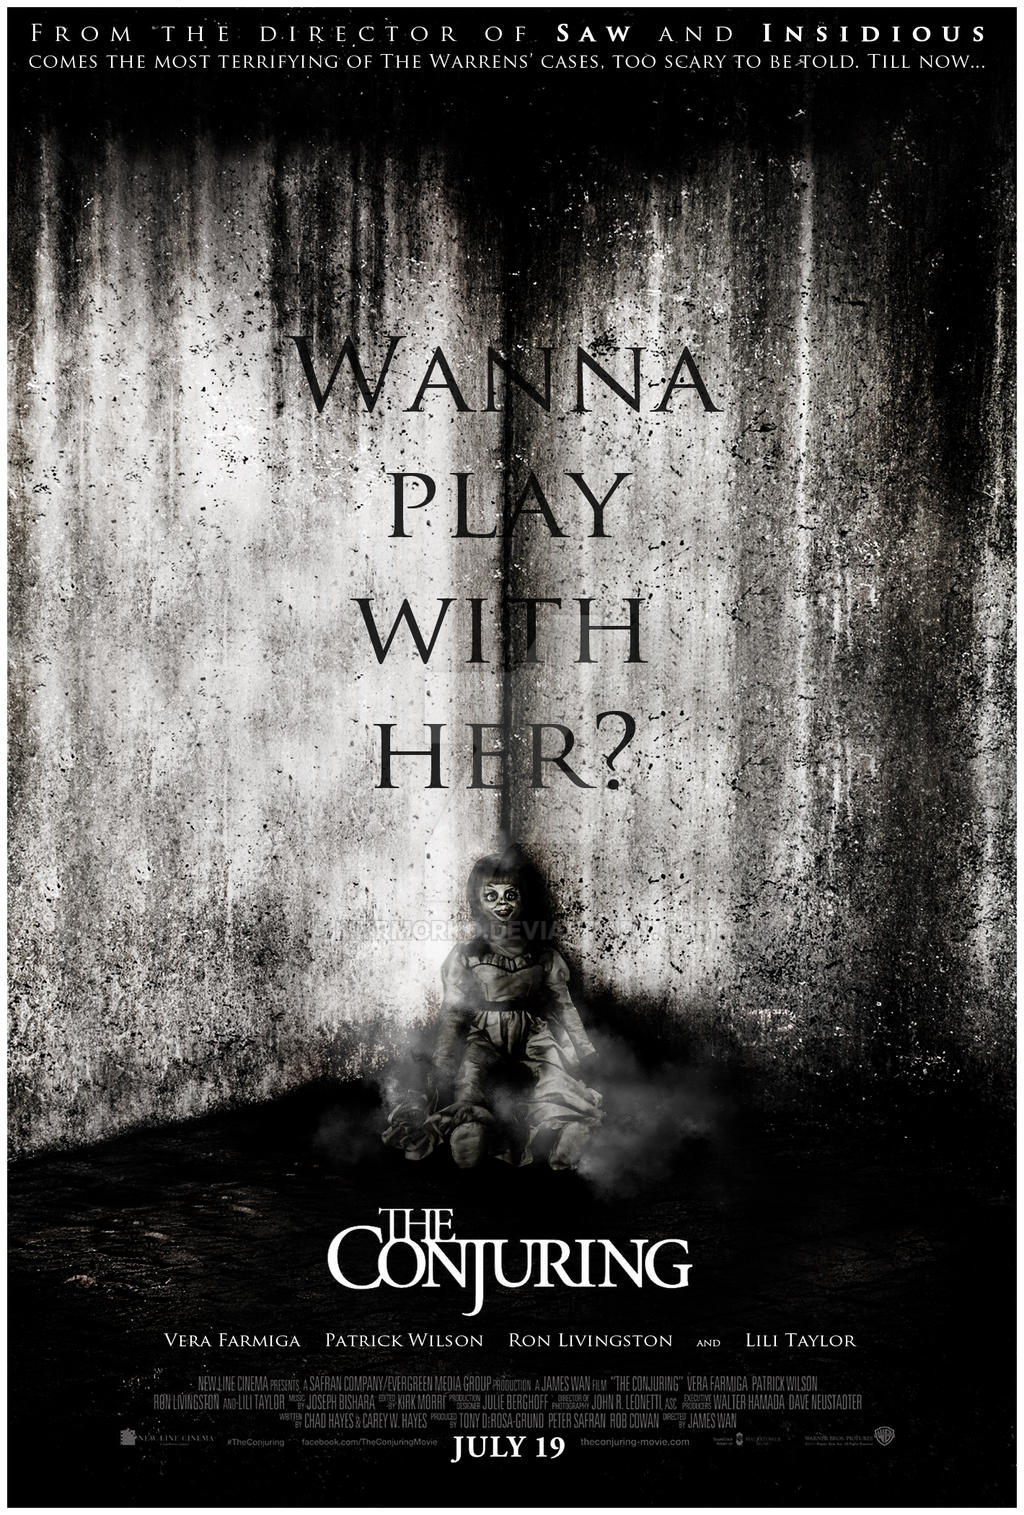 The Conjuring (2013) 720p BluRay x264 [English DD 5 1 + Hindi DD 2 0] - aBHIsONA